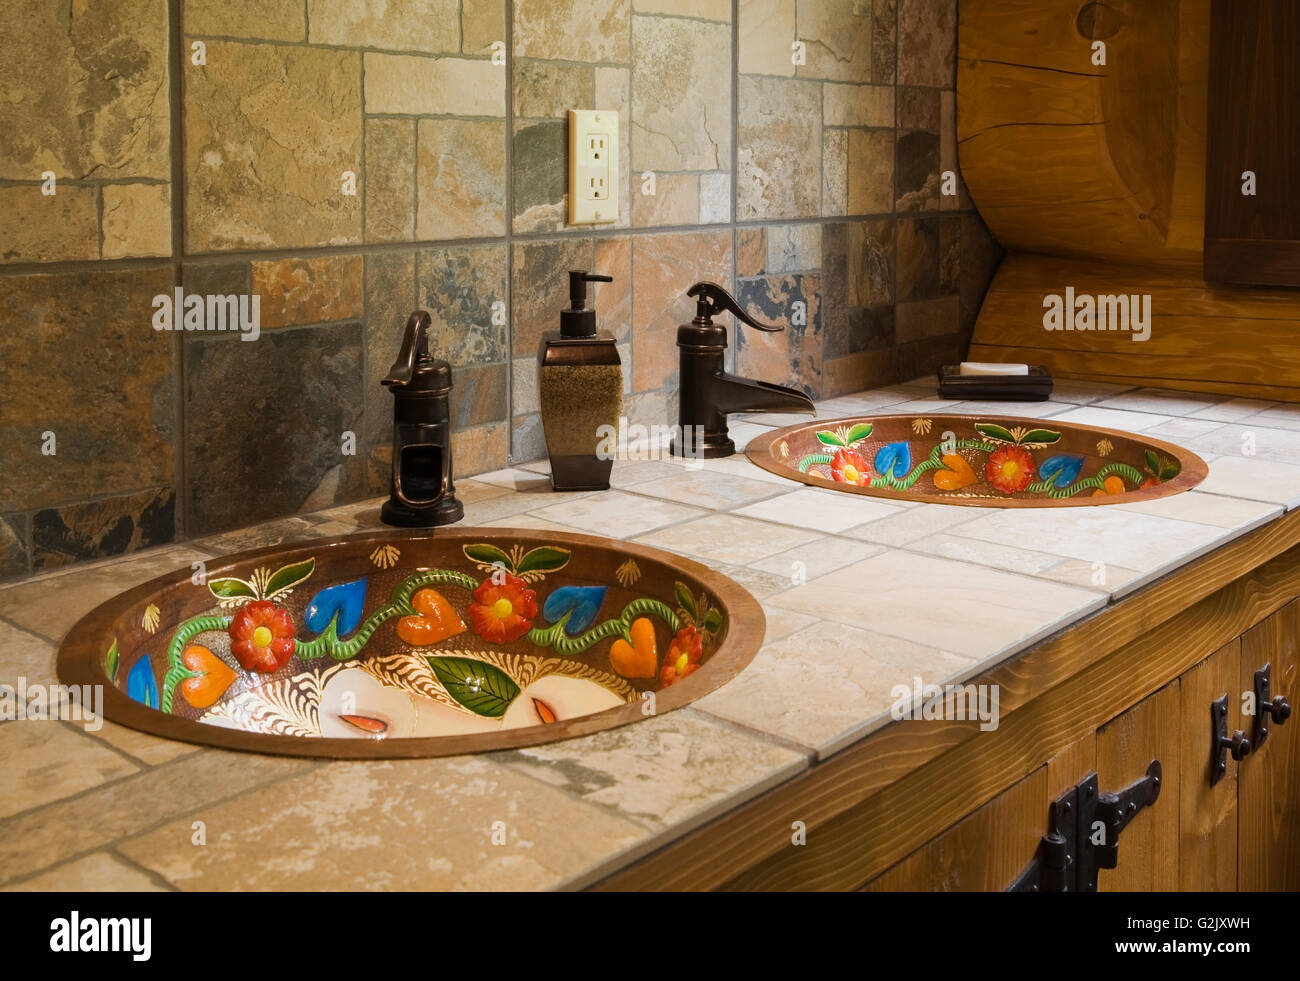 Ceramic tile countertop inlaid hand painted copper sinks in main ceramic tile countertop inlaid hand painted copper sinks in main bathroom inside a handcrafted red cedar log home quebec canada dailygadgetfo Image collections